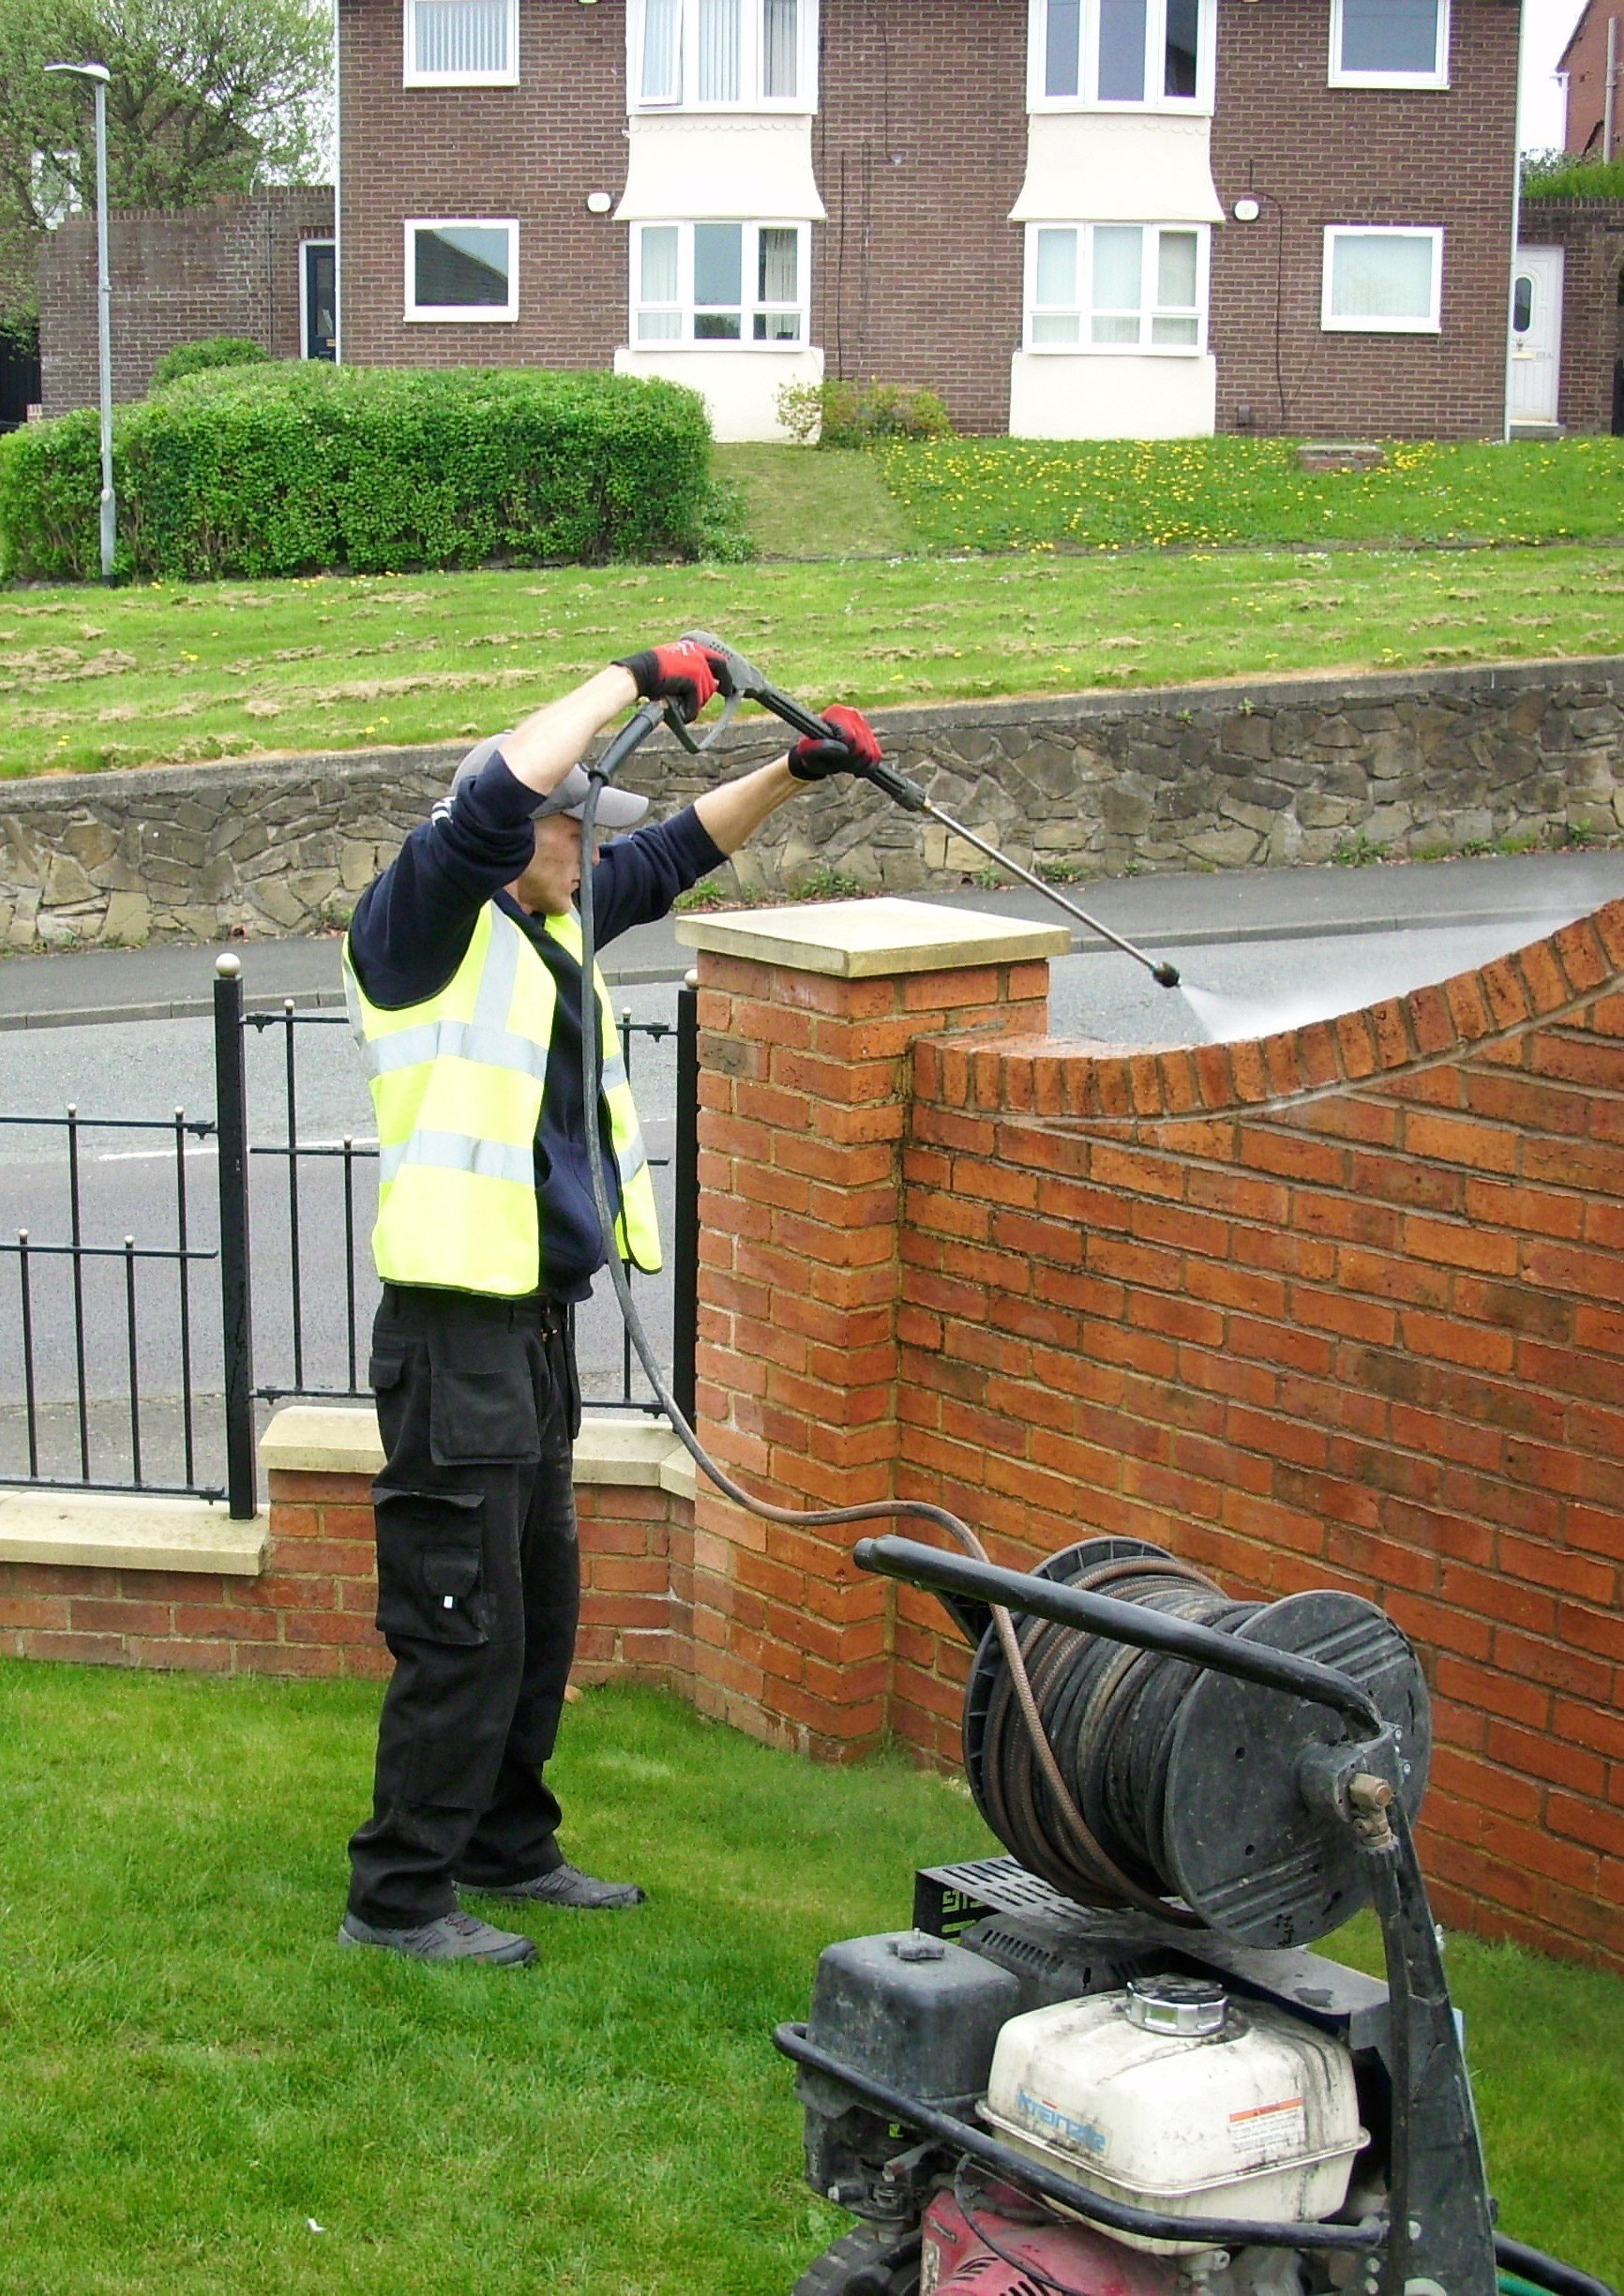 Effective graffiti removal solutions